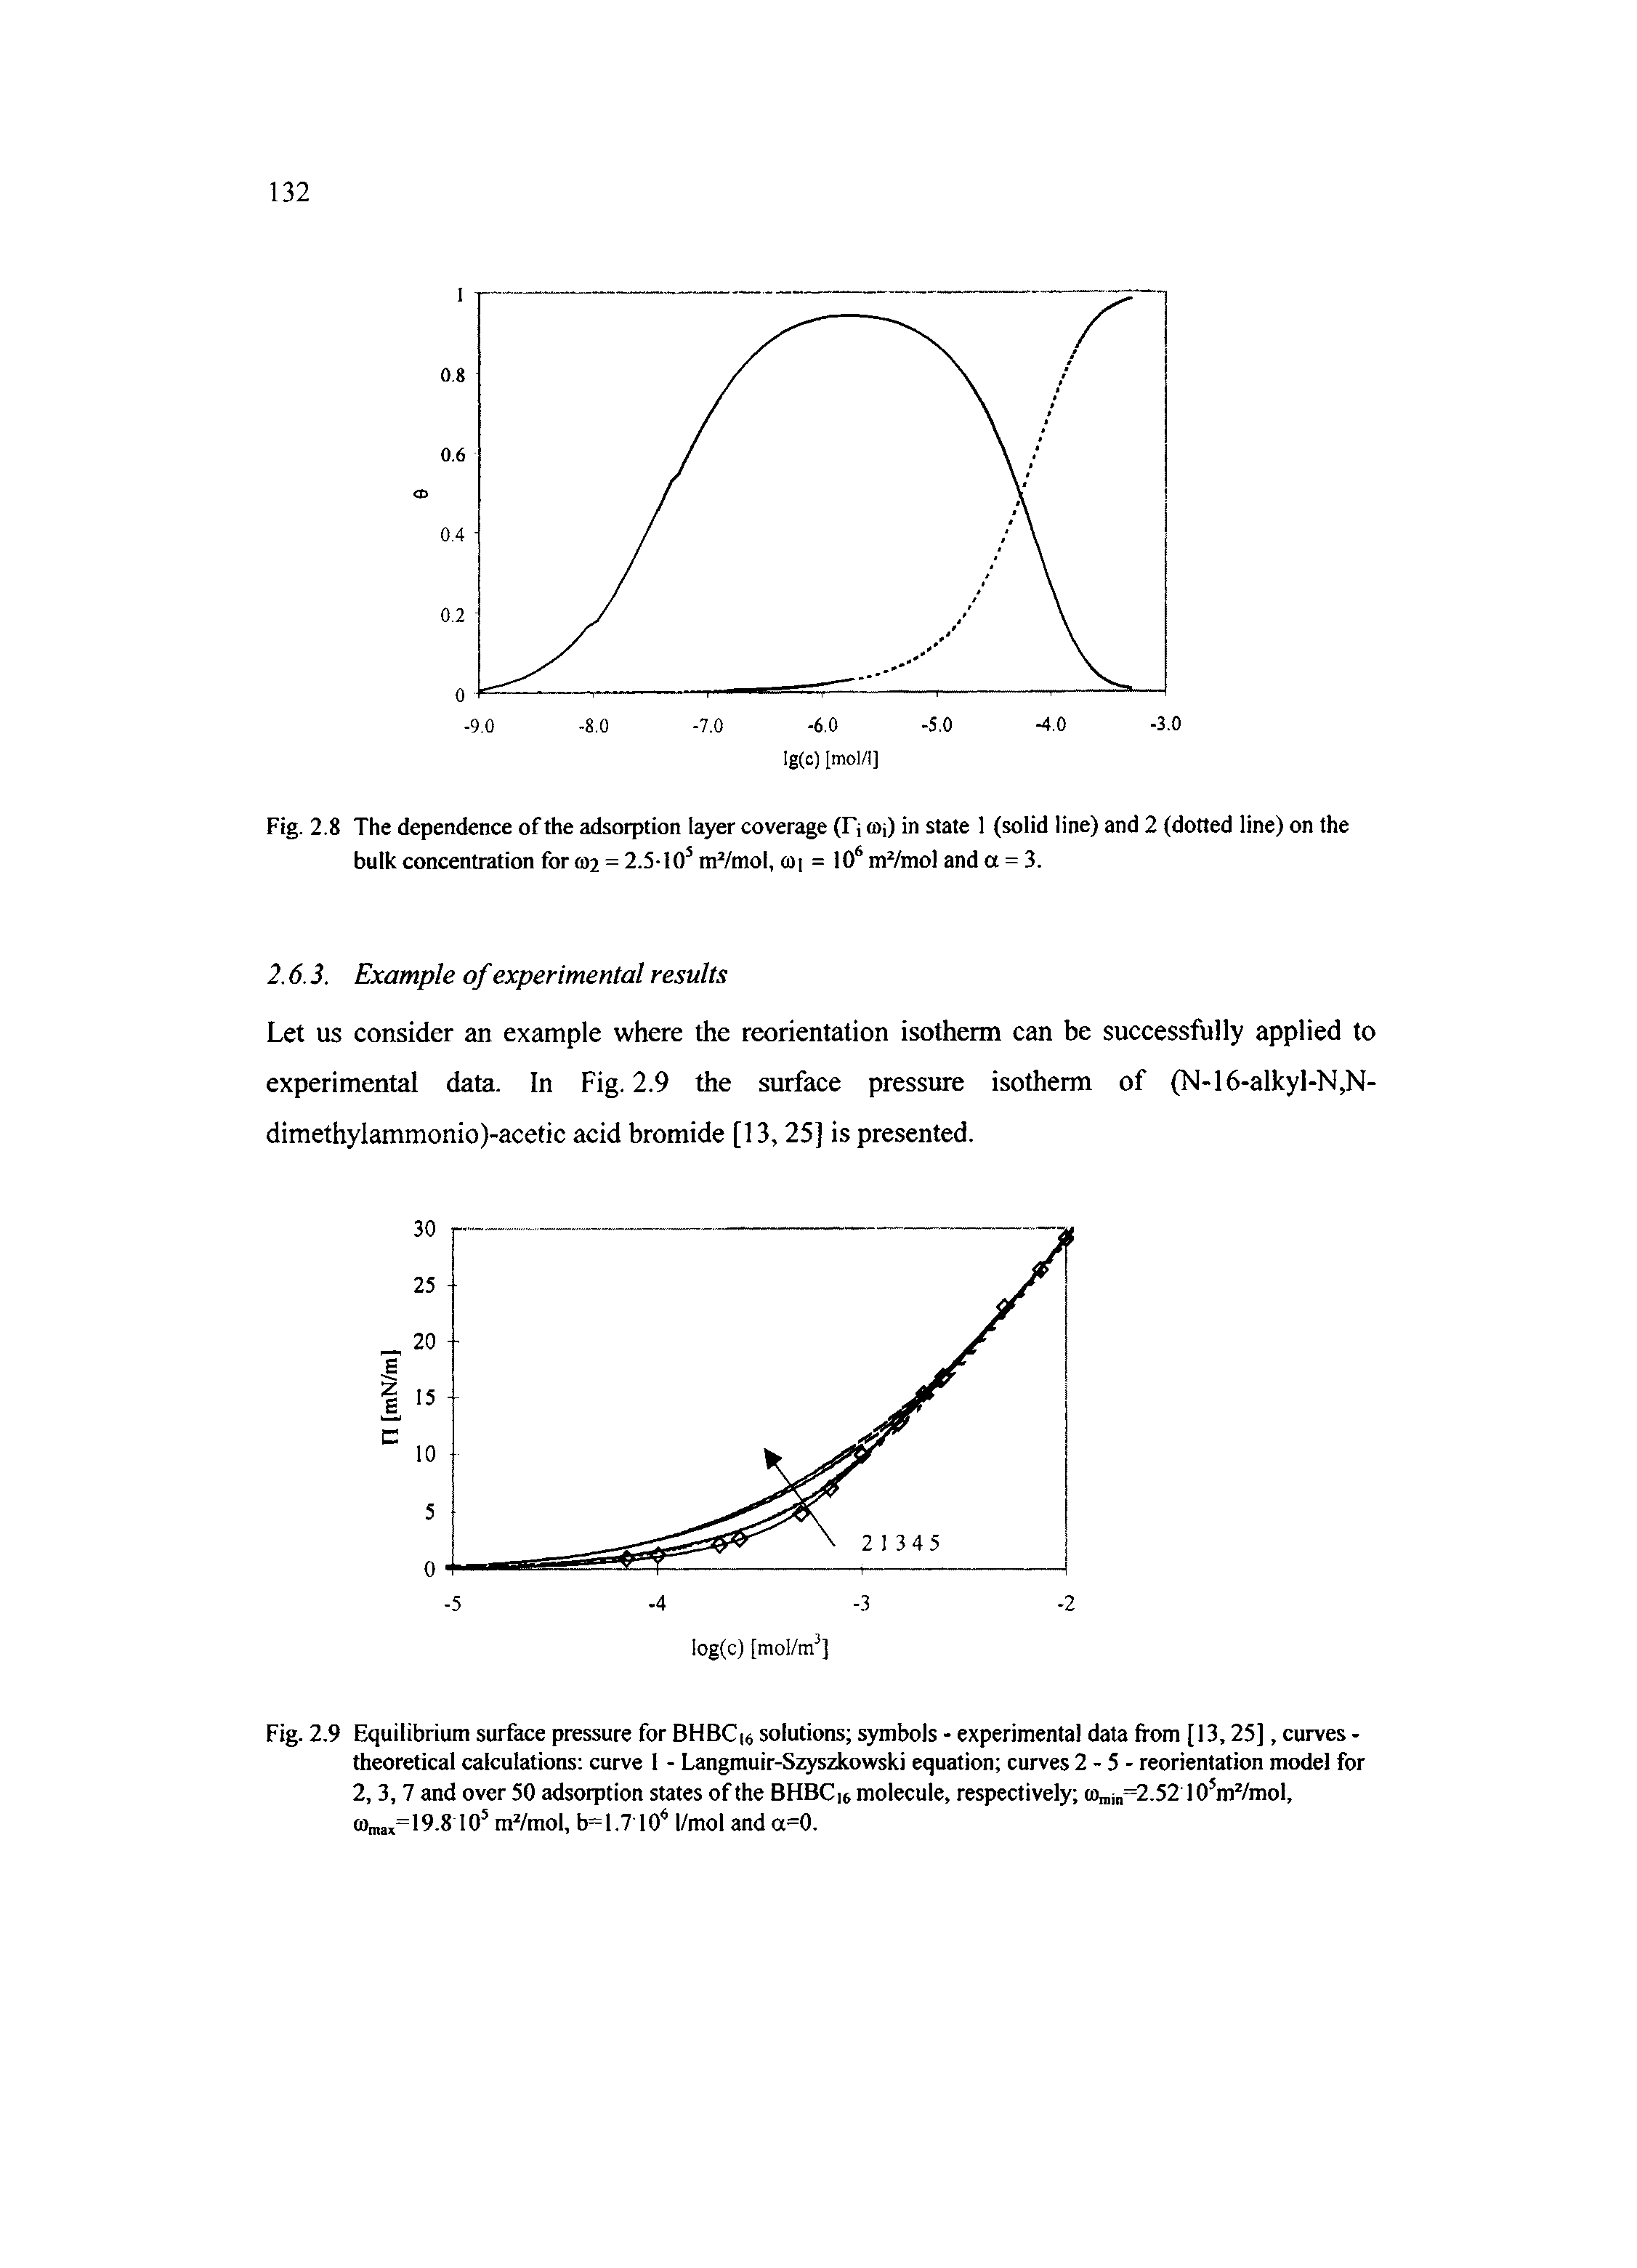 Fig. 2.9 Equilibrium surface pressure for BHBCi solutions symbols - experimental data from [13,25], curves -theoretical calculations curve 1 - Langmuir-Szyszkowski equation curves 2 - 5 - reorientation model for 2, 3, 7 and over 50 adsorption states of the BHBCie molecule, respectively (n j =2.52 lO mVmol,...